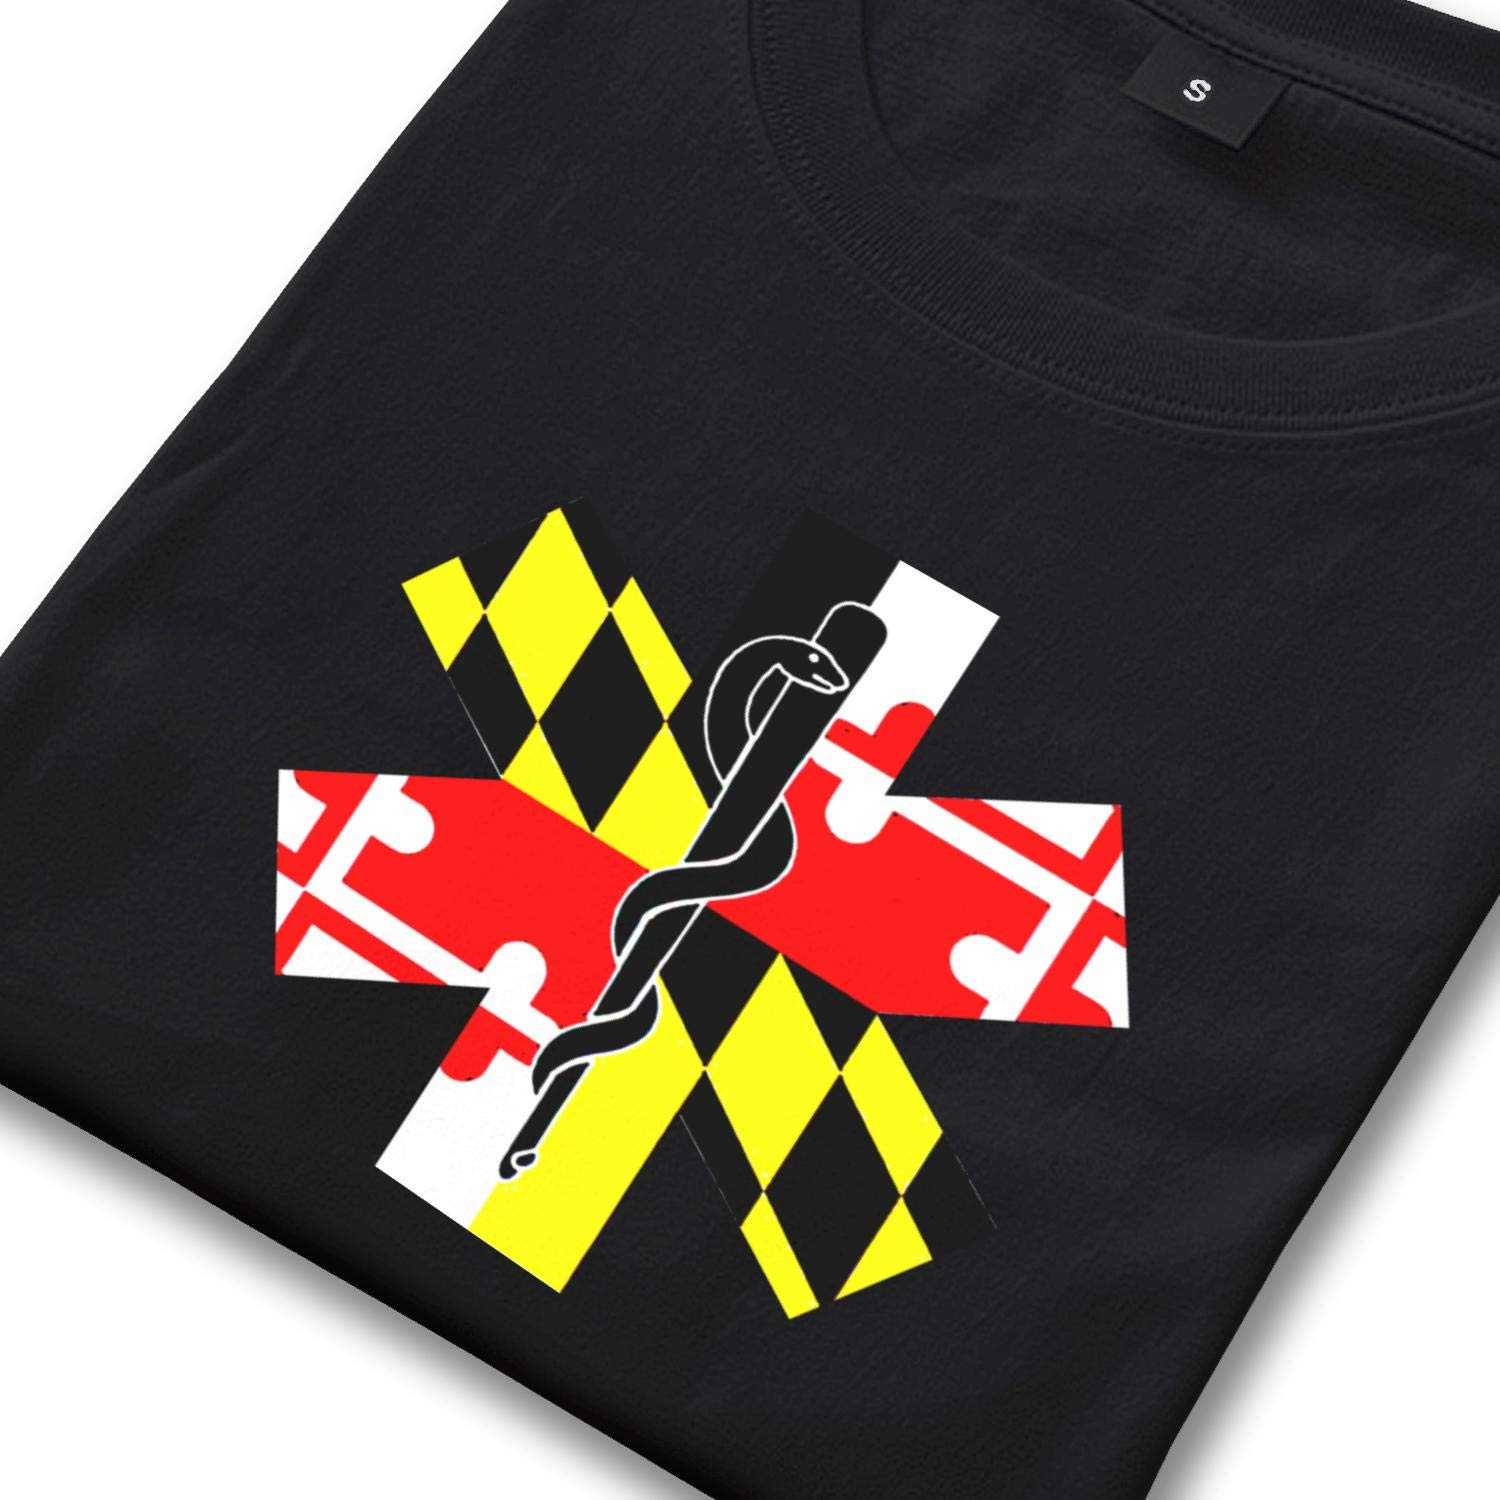 T-Shirt Men Crew Neck Short-Sleeve Maryland State Shaped Flag Tee Graphic Cotton Shirts Arts Tops